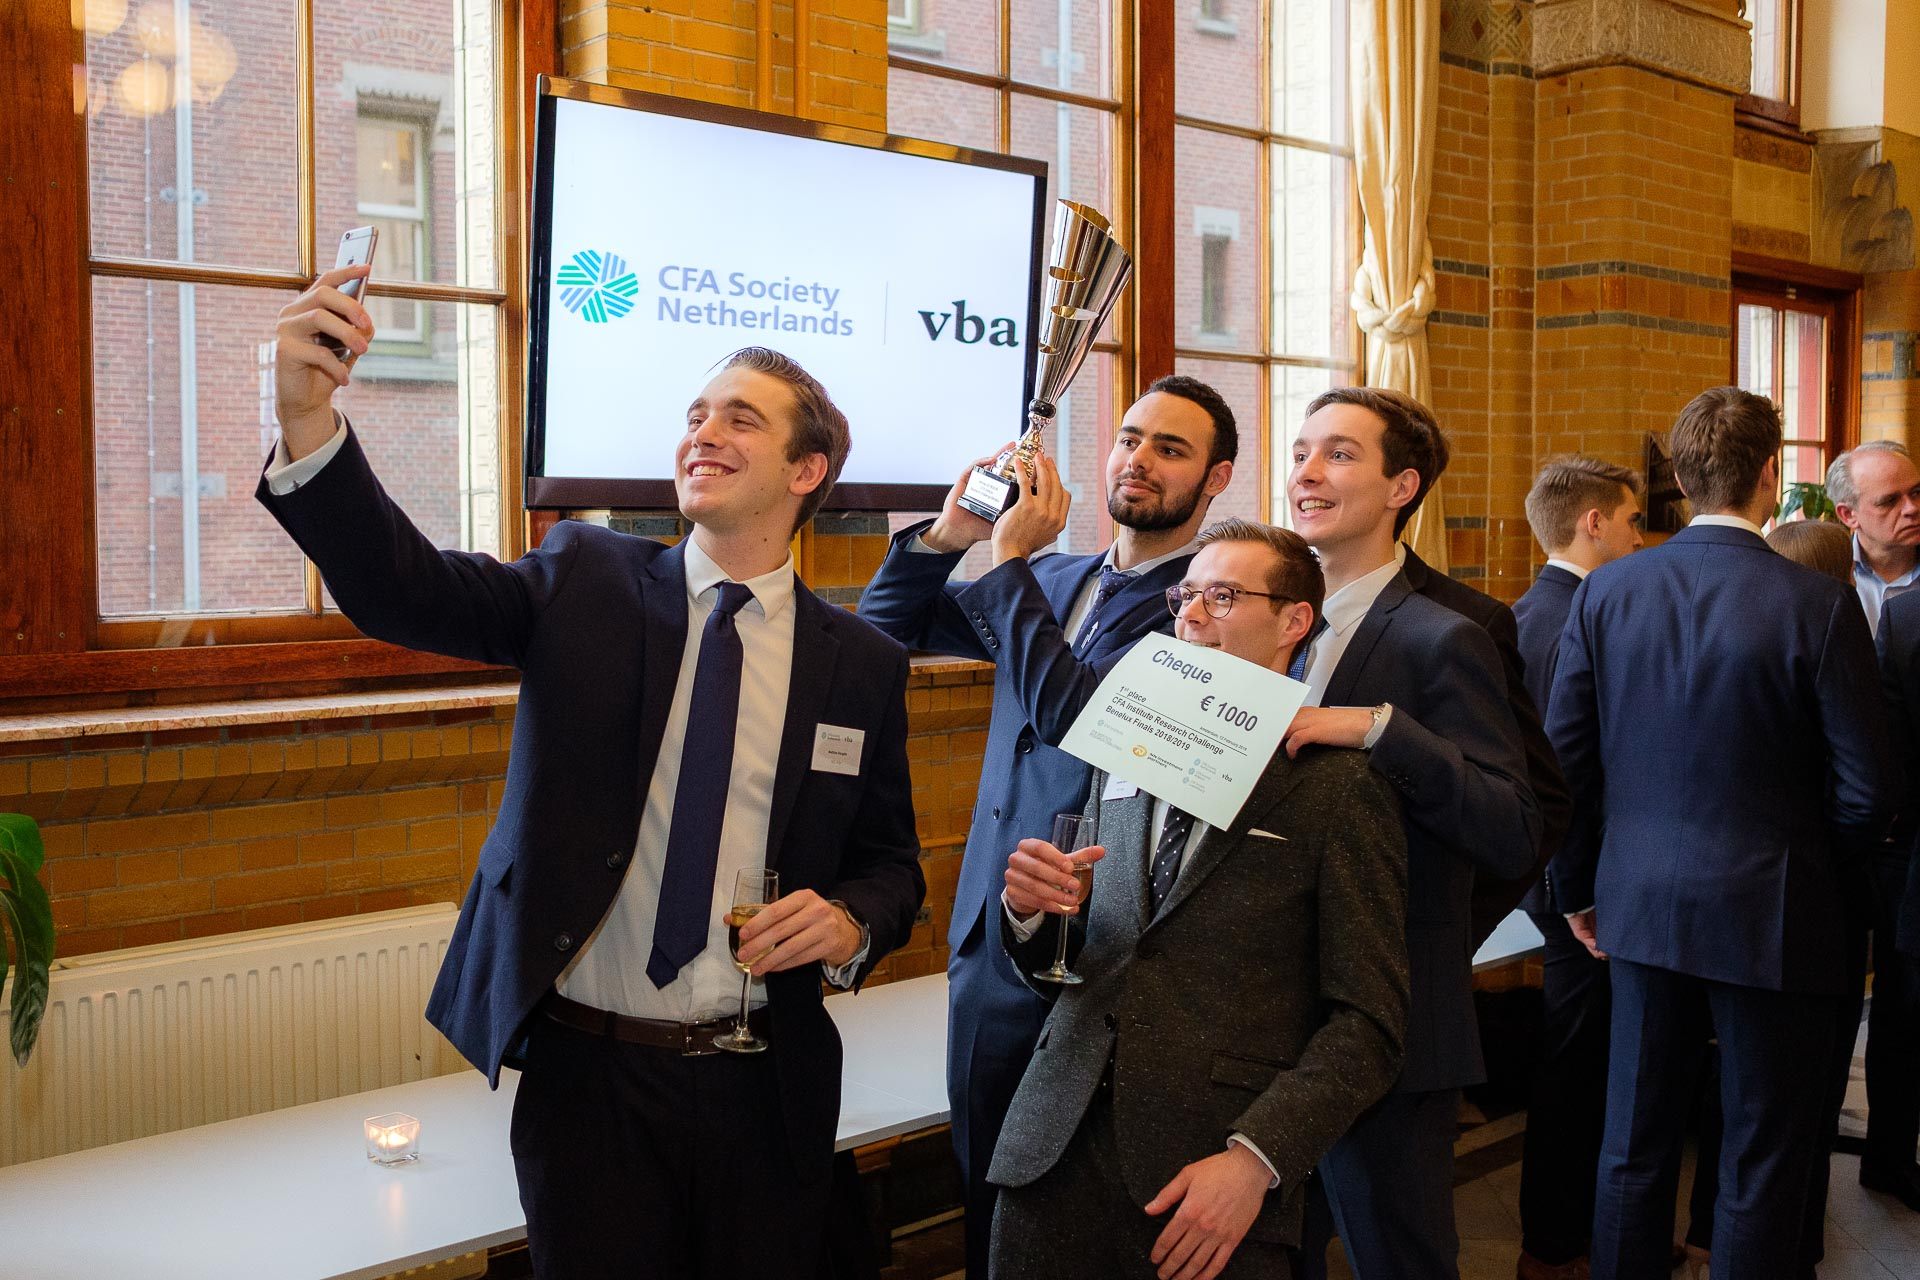 Winnaars van de CFA Research Challenge